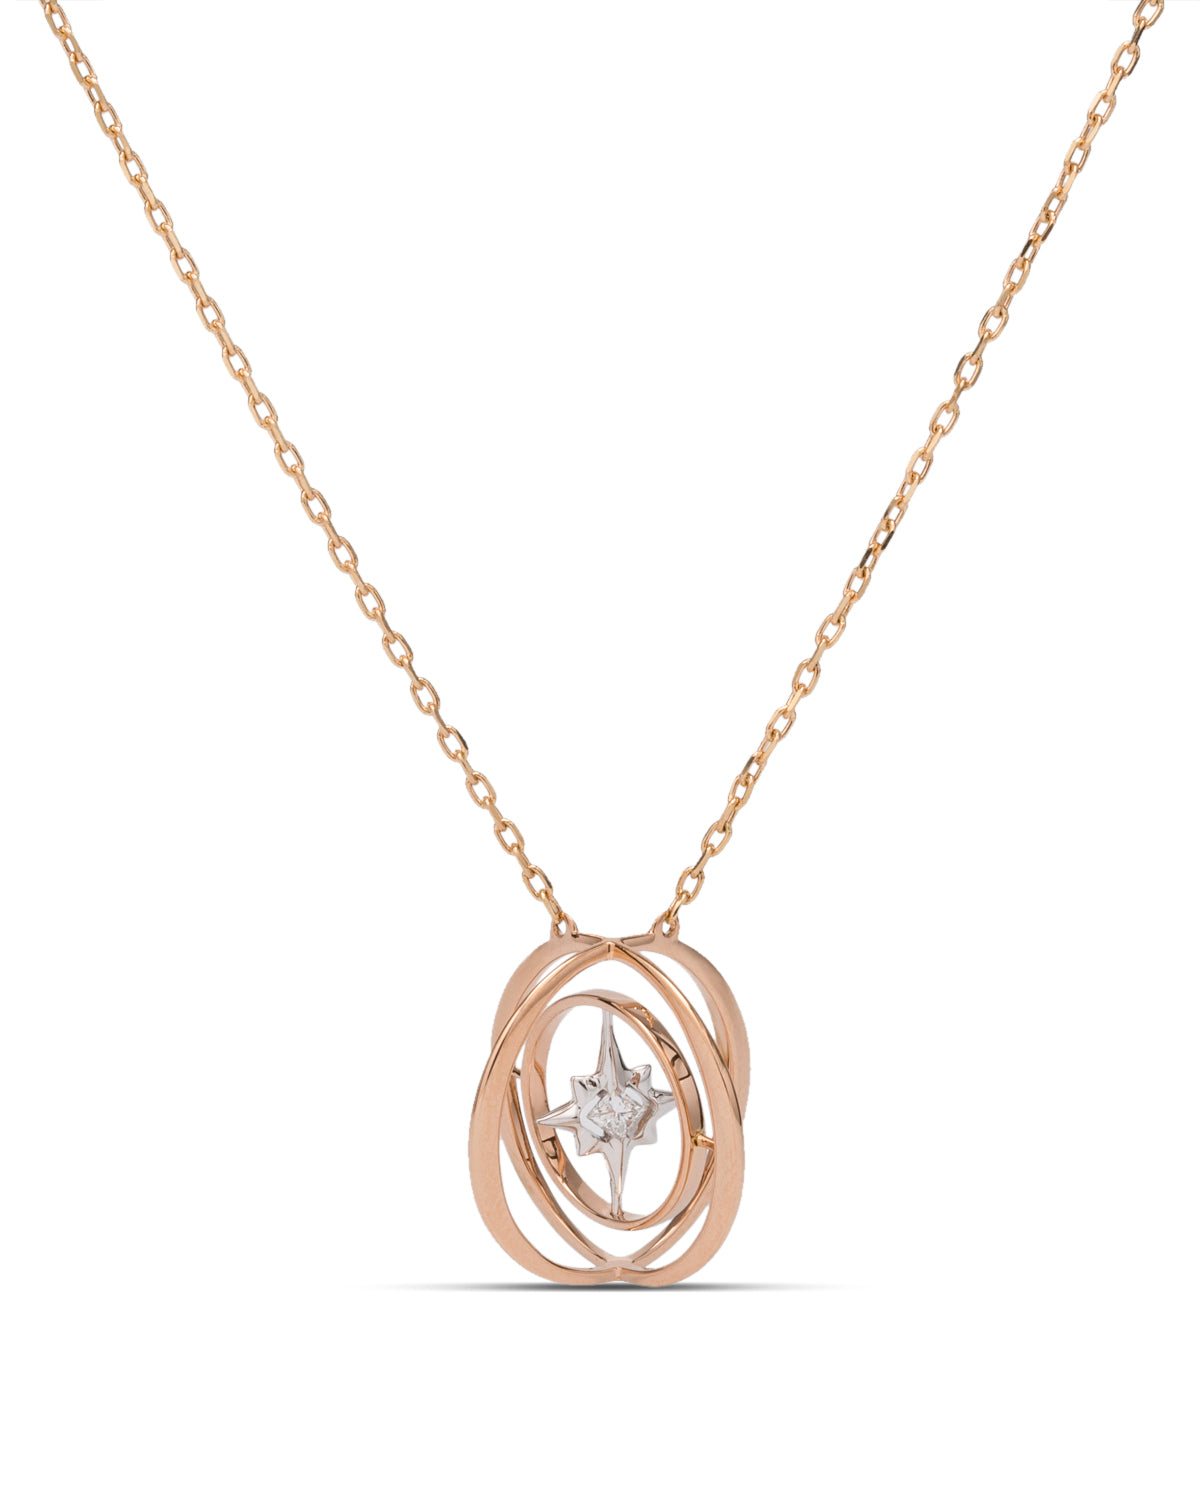 Small Astrolabe Pendant - Charles Koll Jewellers